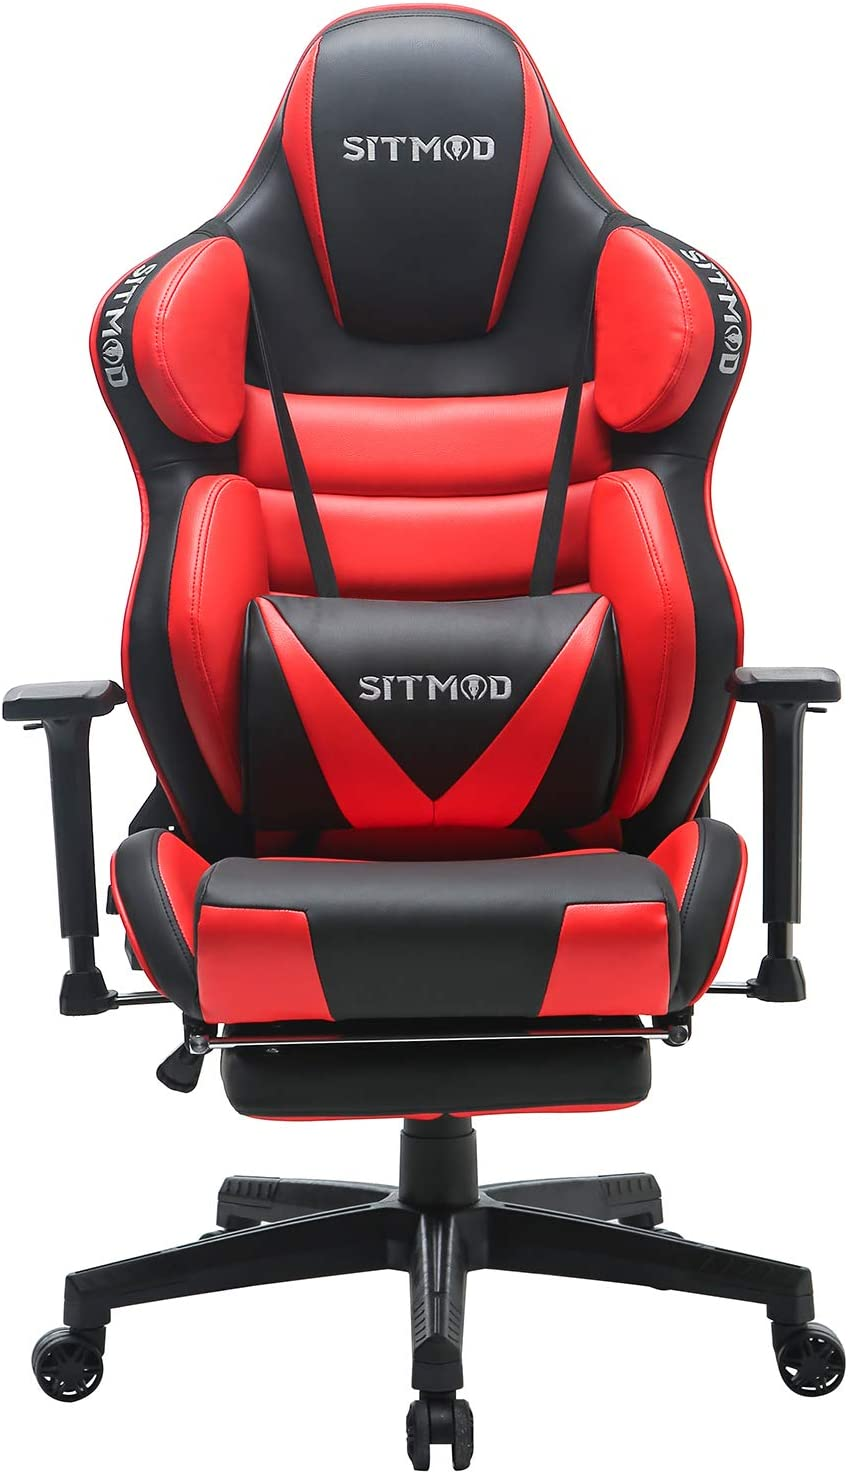 SITMOD Chaise Gaming Fauteuil Gamer Ergonomique 200kg Cuir PU Chaise Racing Pro Massage, Inclinable Grande Taille Fauteuil pour Bureau Broderie Lumineuse Siège Gamer Bascule avec Repose Pied-Rouge